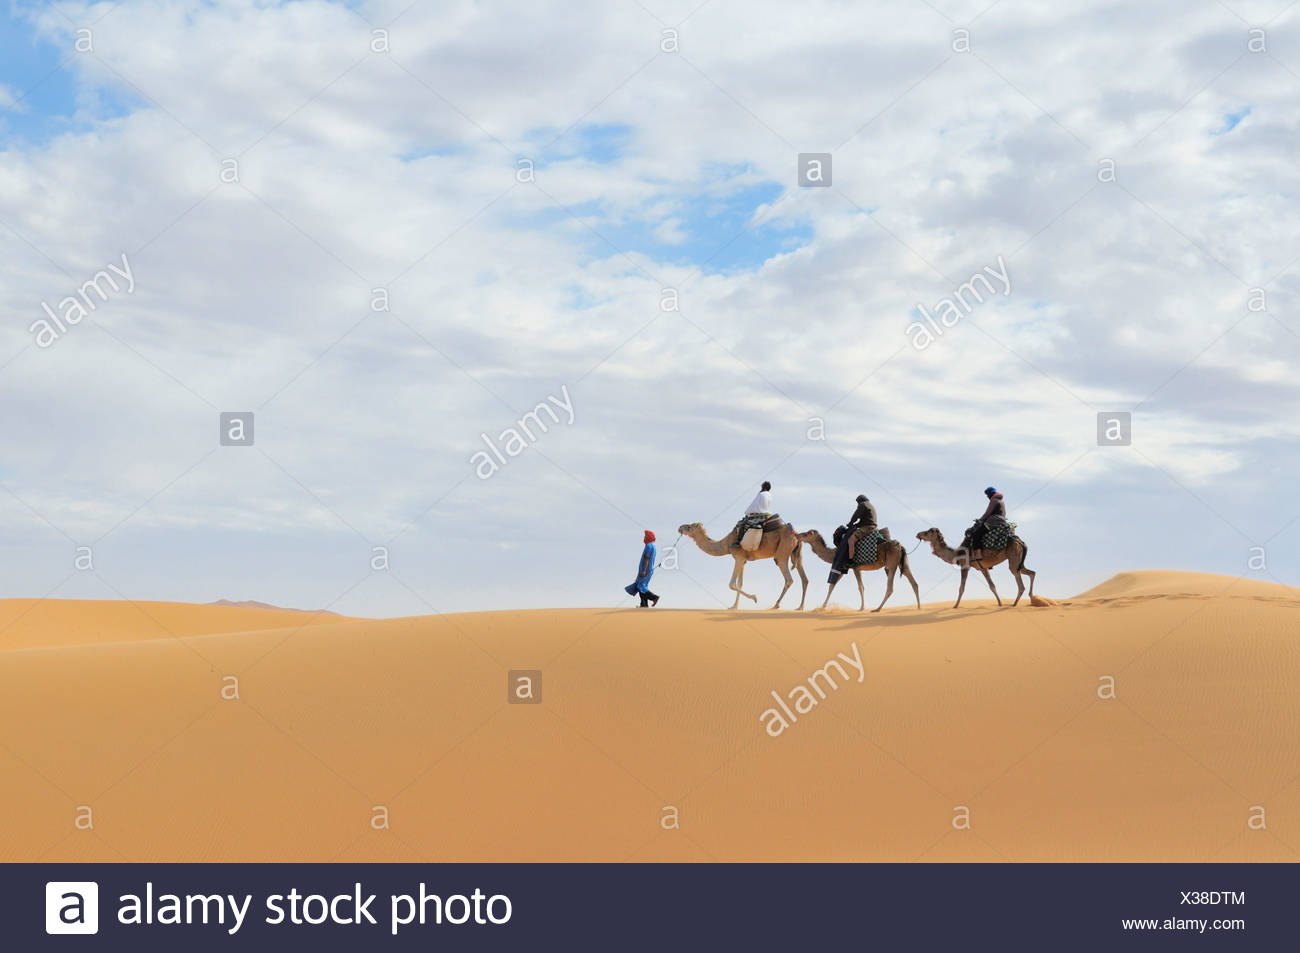 dromedary, one-humped camel (Camelus dromedarius), caravan in the desert, Morocco, Erg Chebbi, Sahara Stock Photo